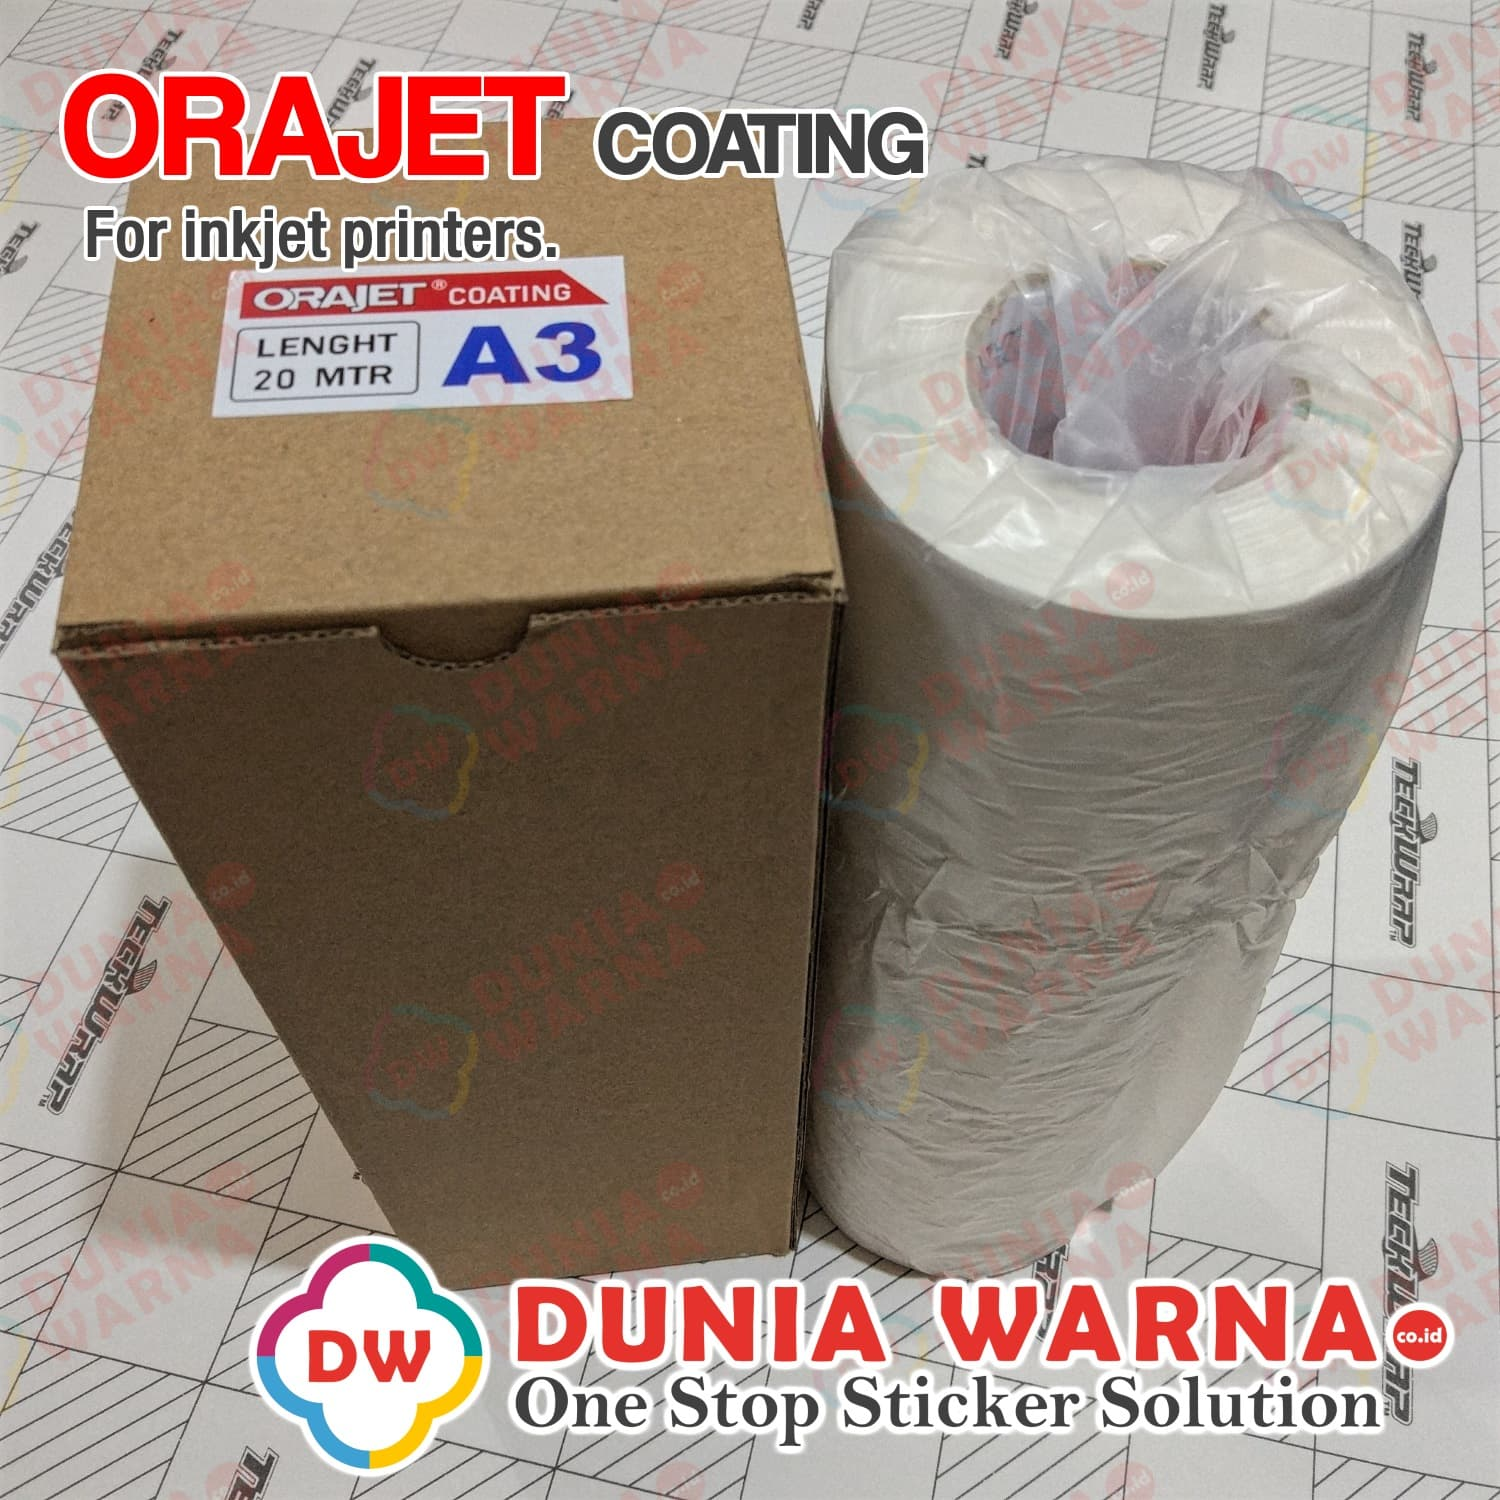 photo regarding Printable Sticker Vinyl identify Jual ORAJET Coating Vinyl Sticker Inkjet Printable WHITE